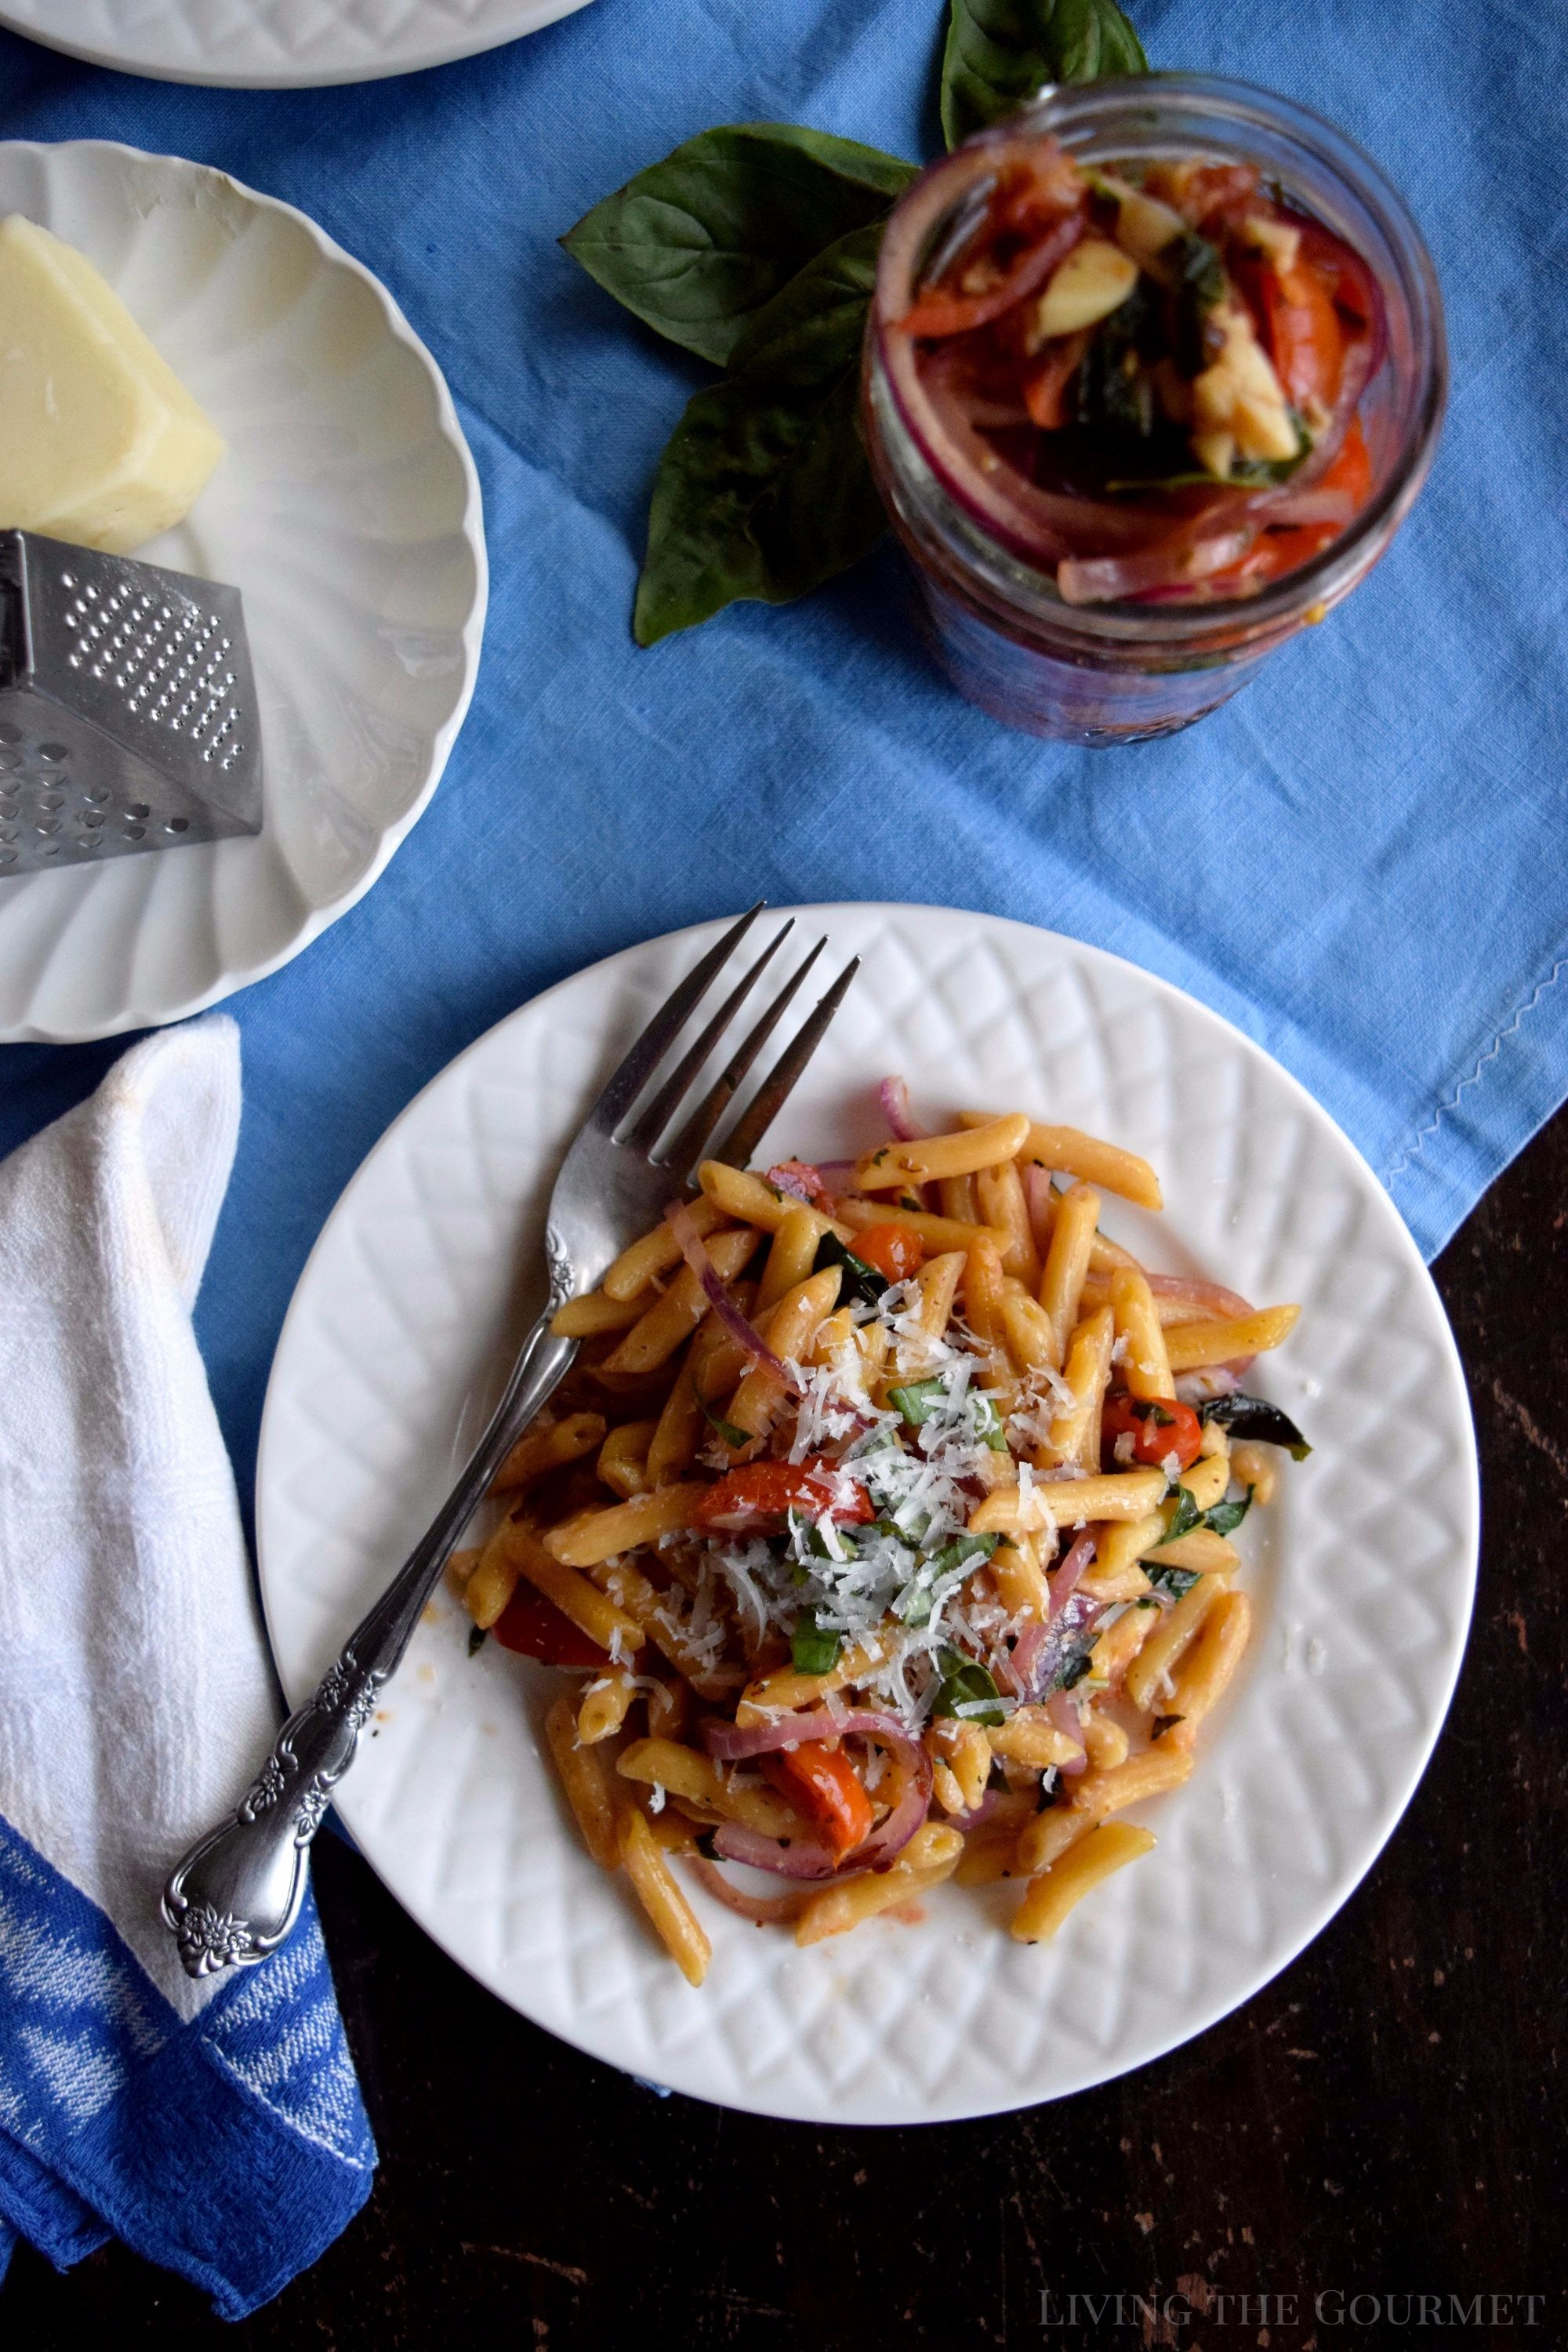 Make the most of the end of season harvest with this Fresh Garden Sauce served along side Barilla Ready Pasta for a simple, delicious meal. #ReadyPasta #ad